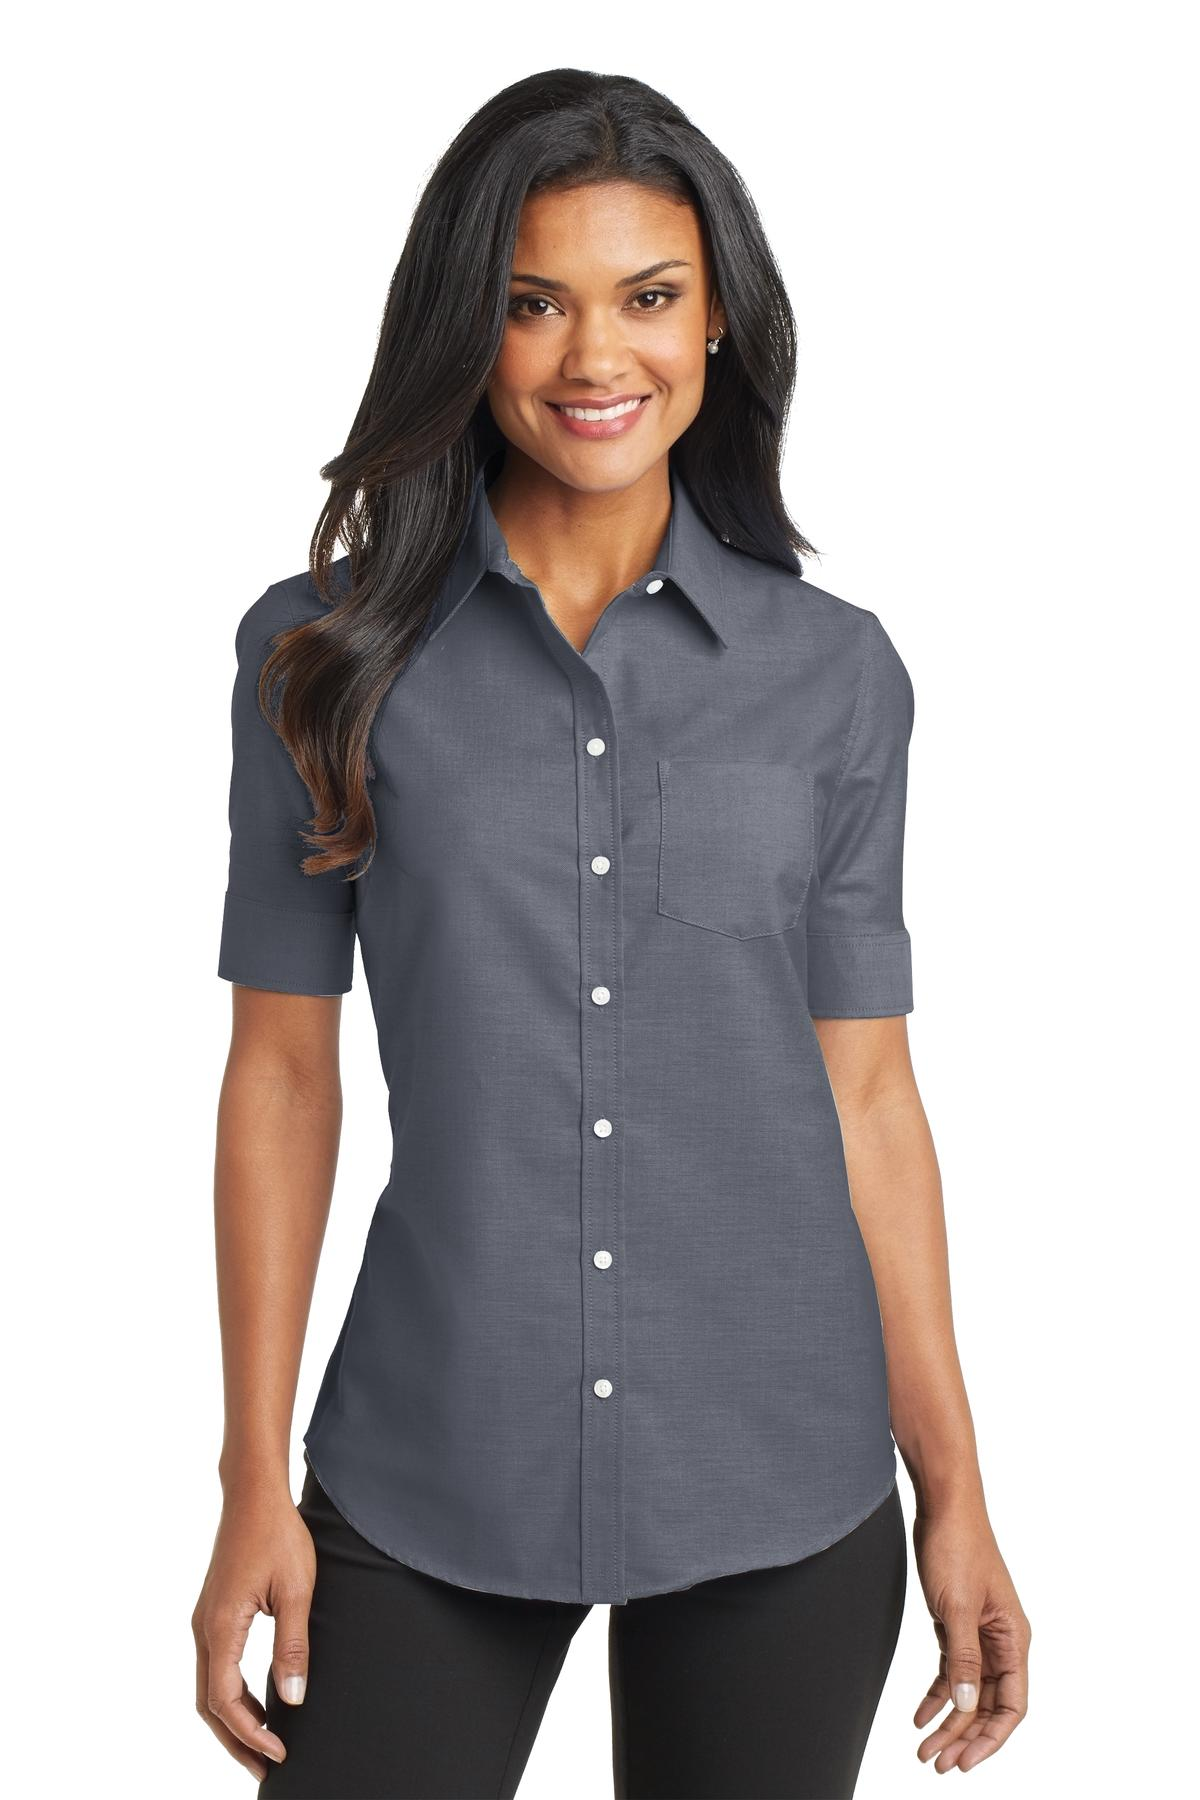 UltraClub Ladies' Classic Wrinkle-Resistant Short-Sleeve Oxford A lightweight blend of cotton/poly fabric that is wrinkle-resistant is the start of an excellent ladies' oxford work shirt. Cut for a classic fit and sewn with a button-down collar.